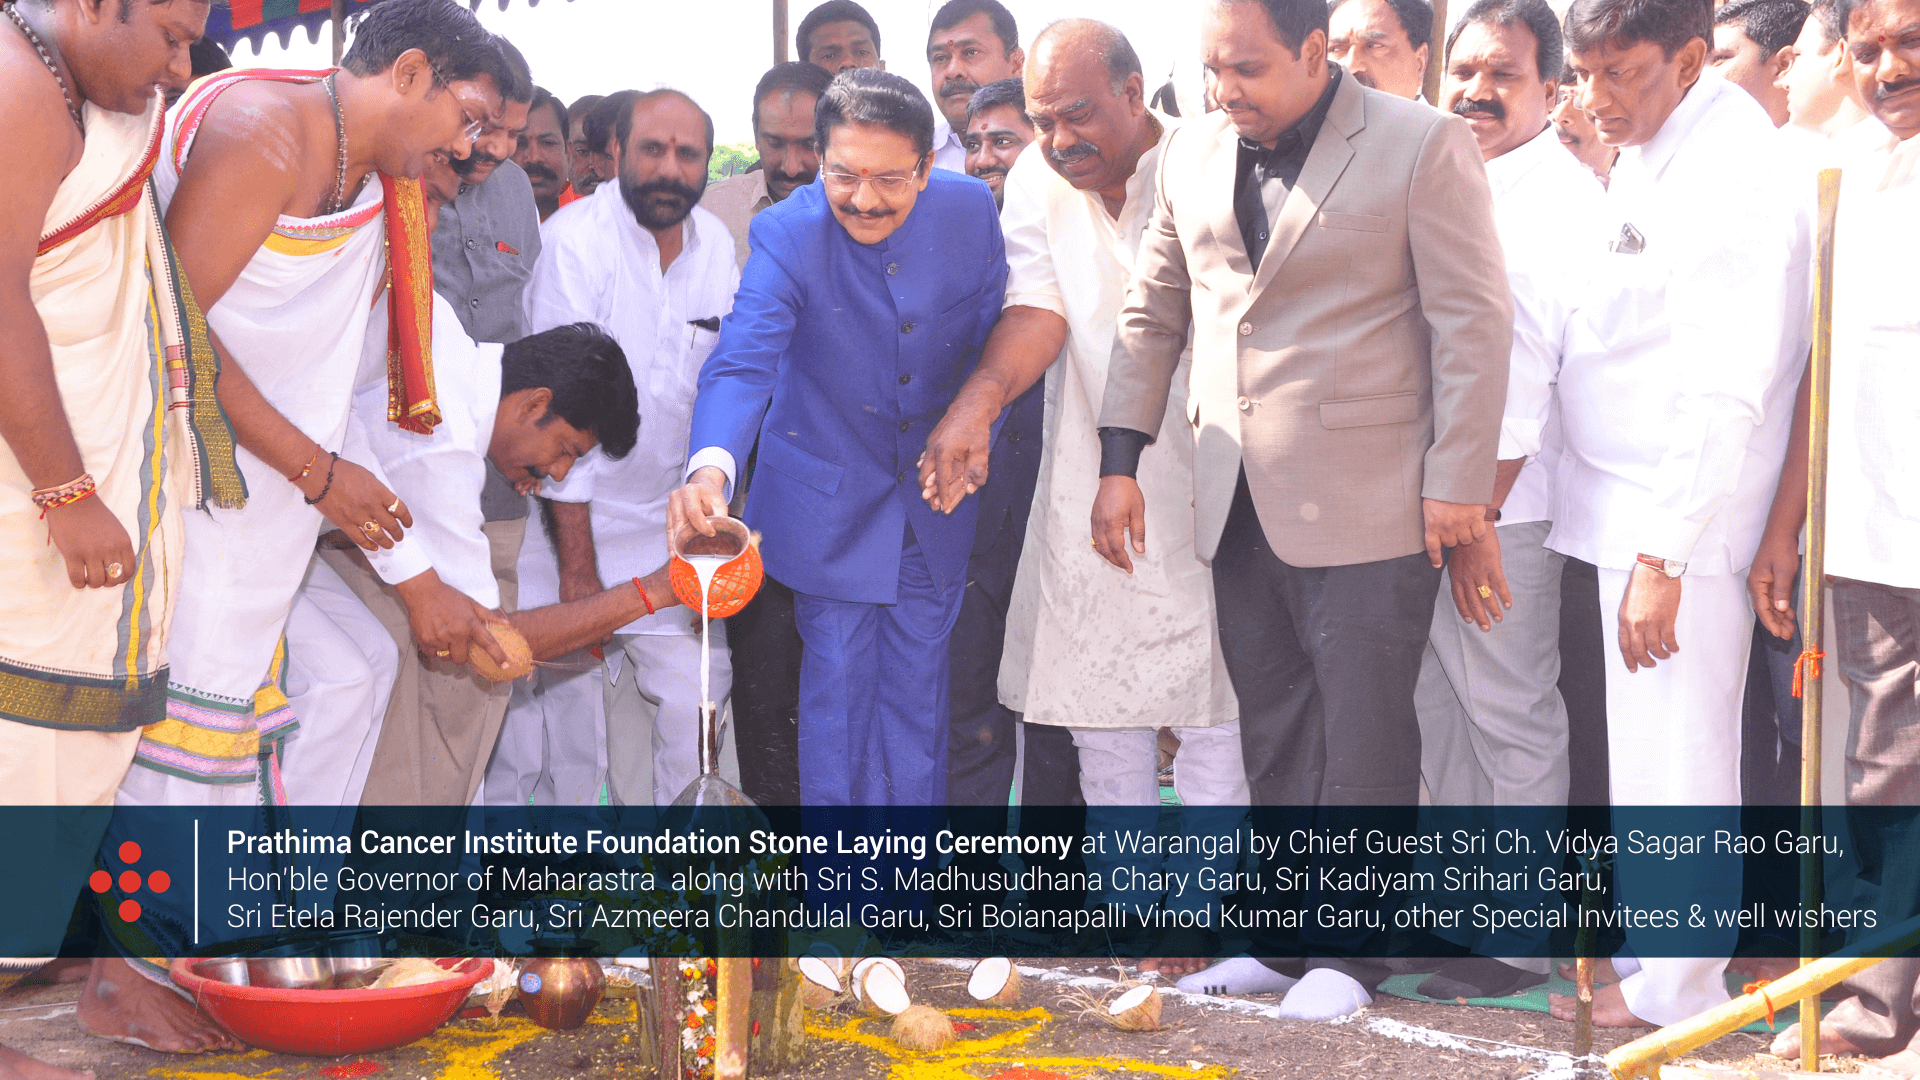 Prathima Cancer Institute Foundation Laying Ceremony Event Gallery